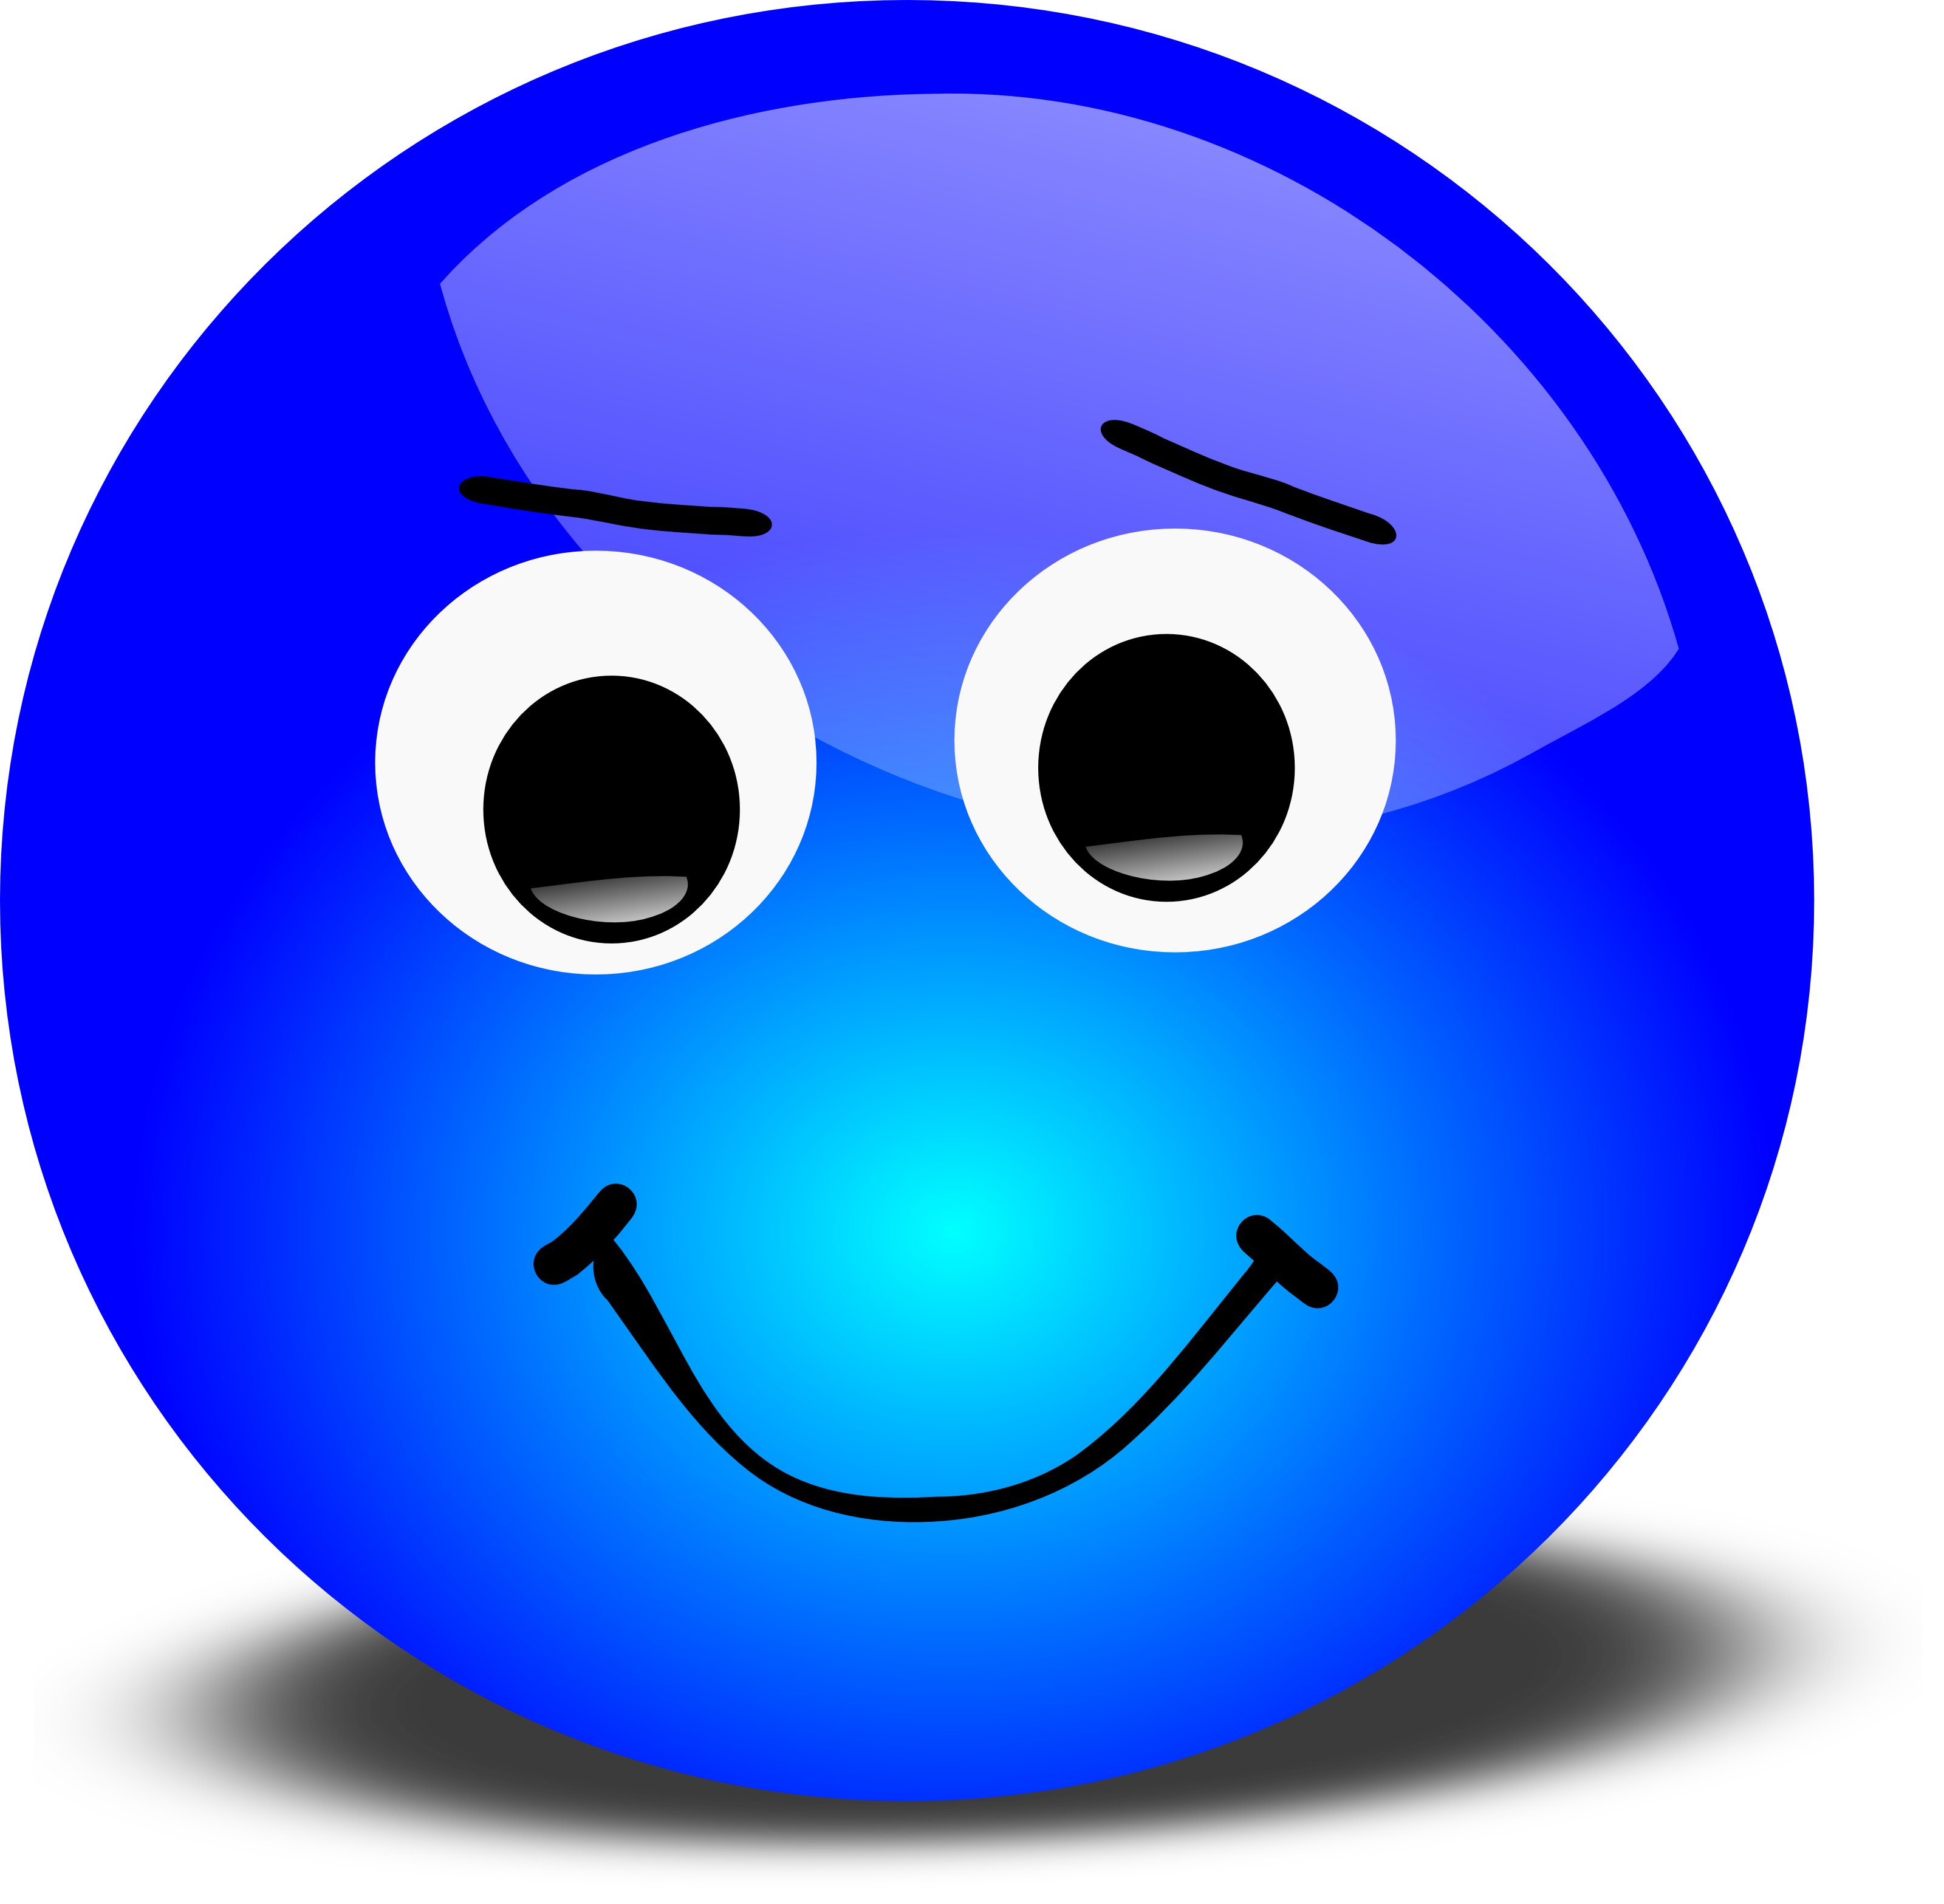 Emotions clipart emotional wellness. Smiley face clip art